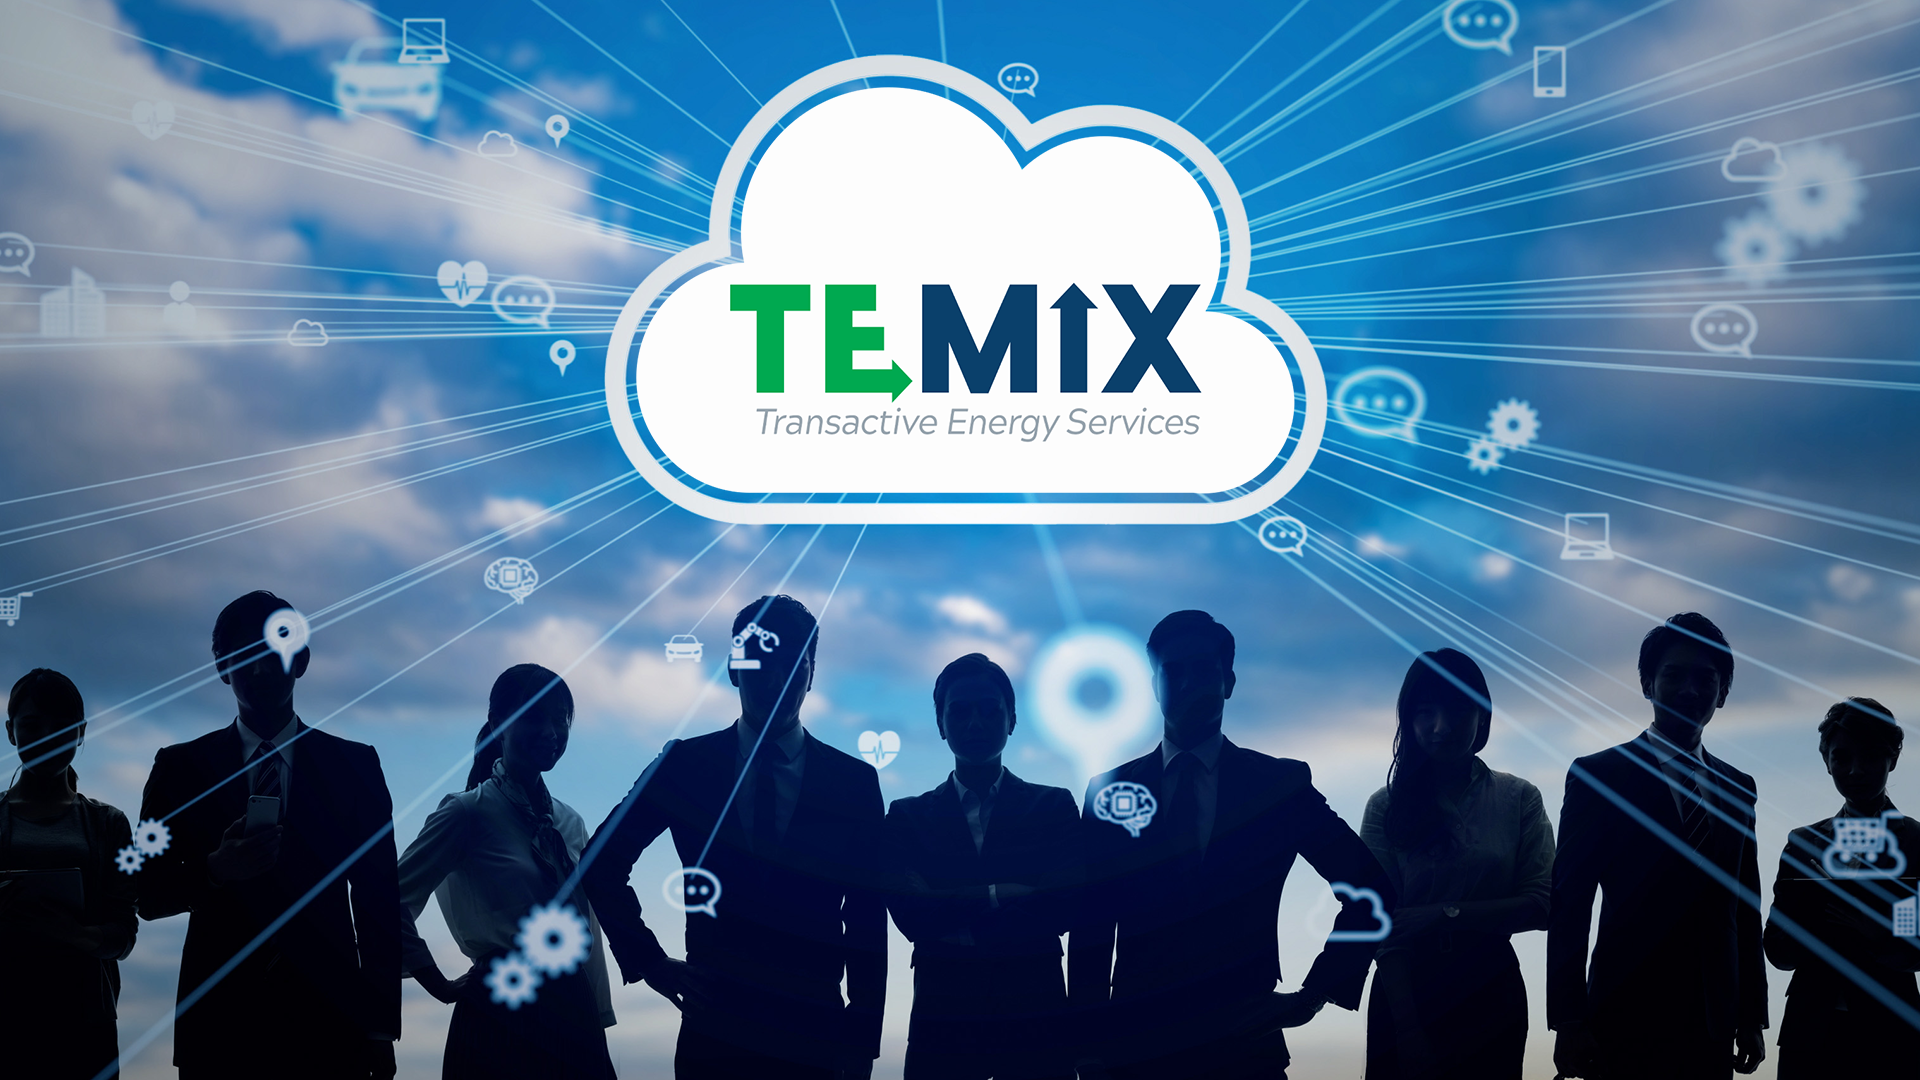 Get Started with TeMix